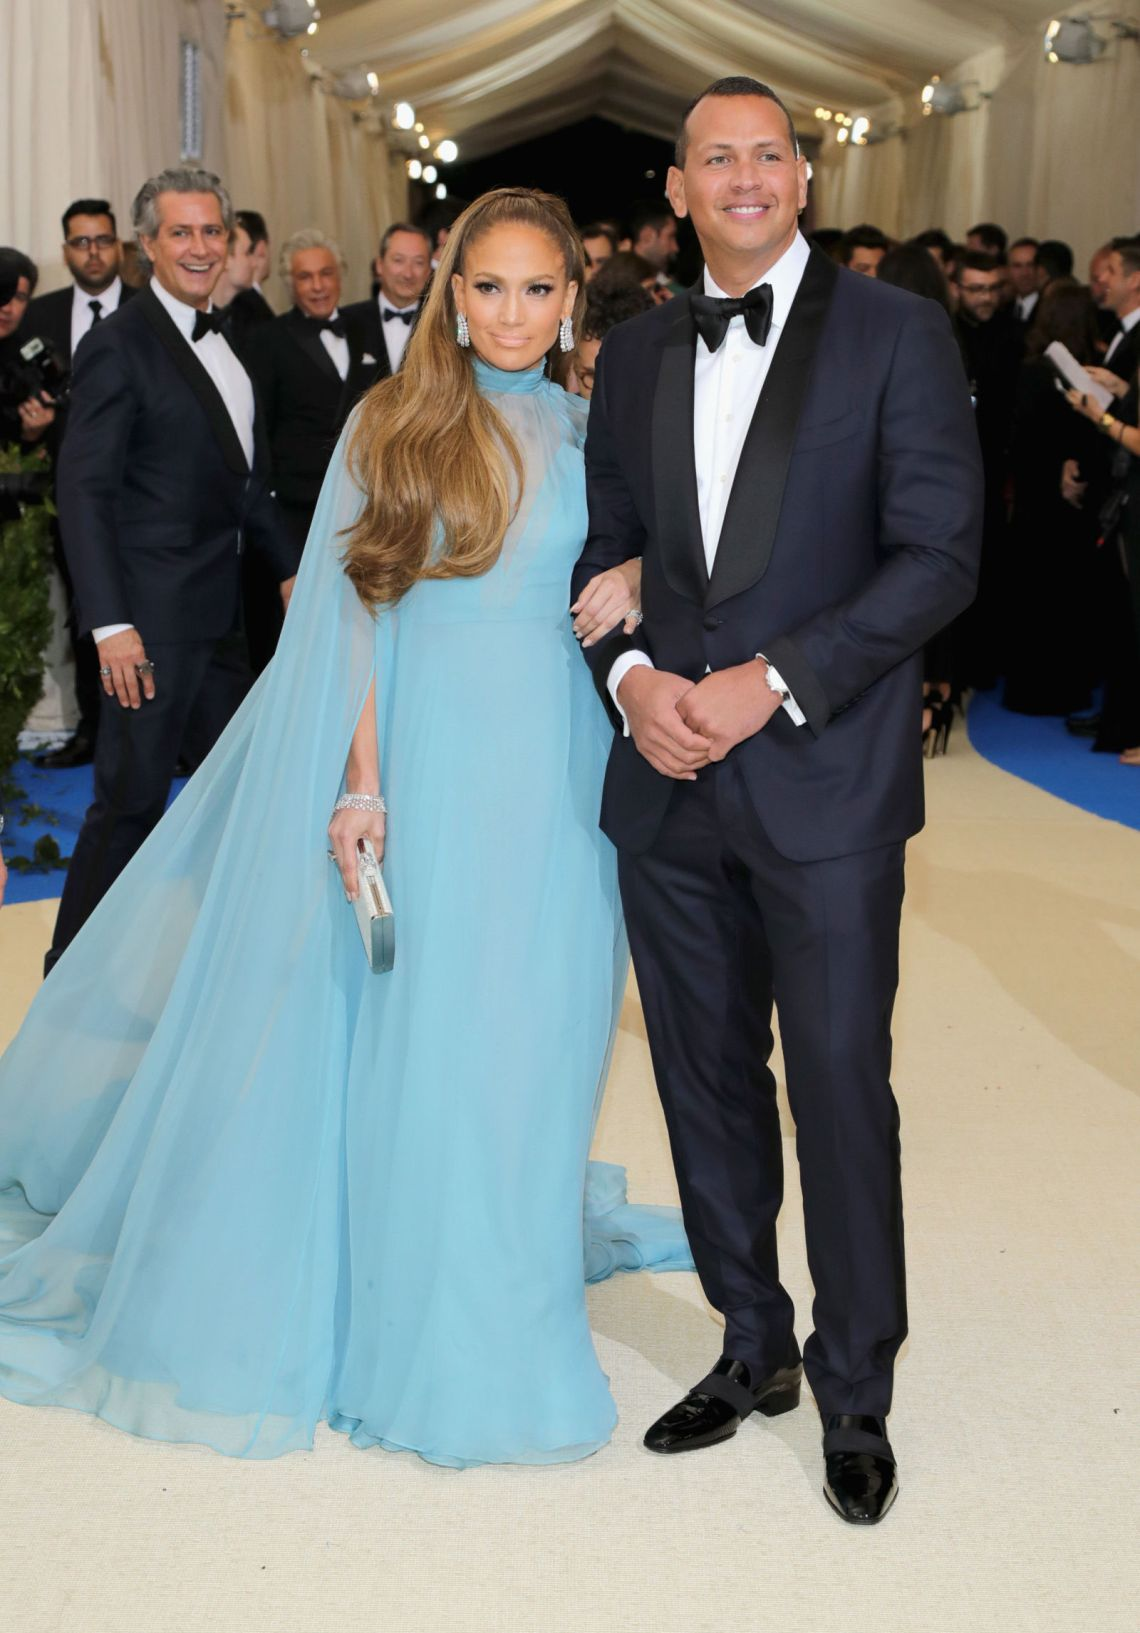 gallery-1493684797-jennifer-lopez-met-gala-blue-dress-2017